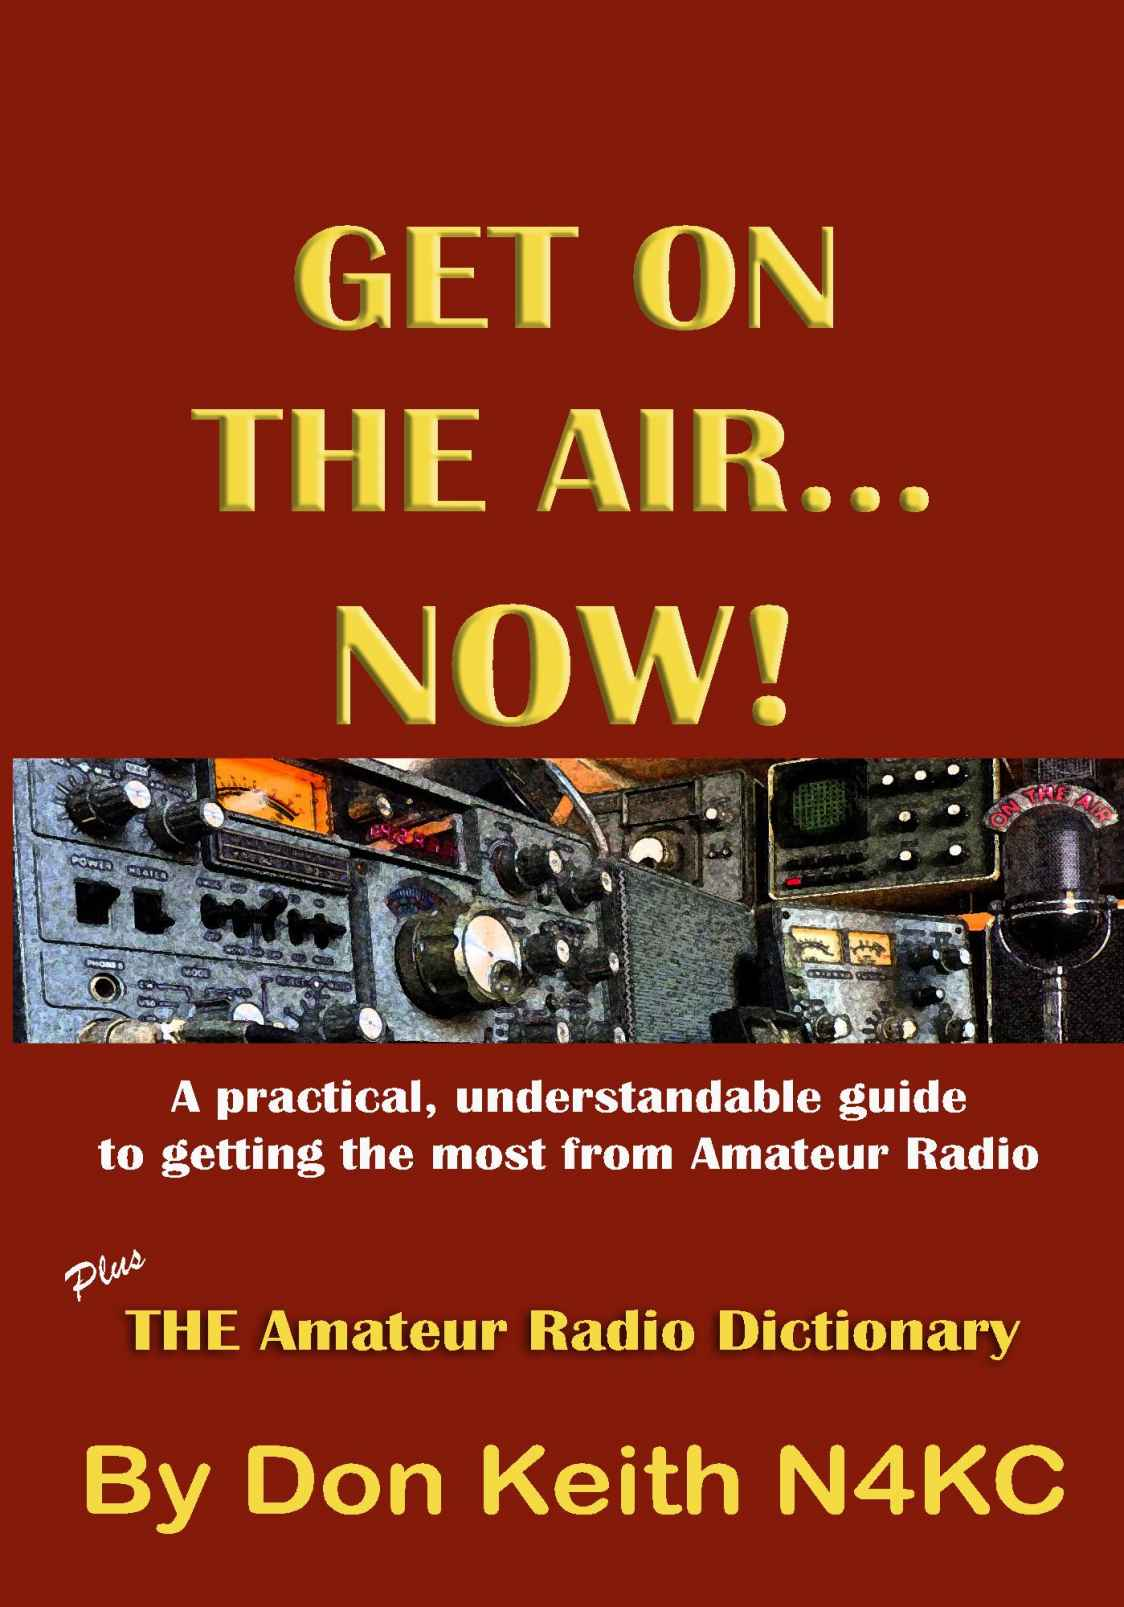 GET ON THE AIR...NOW! by Don Keith N4KC